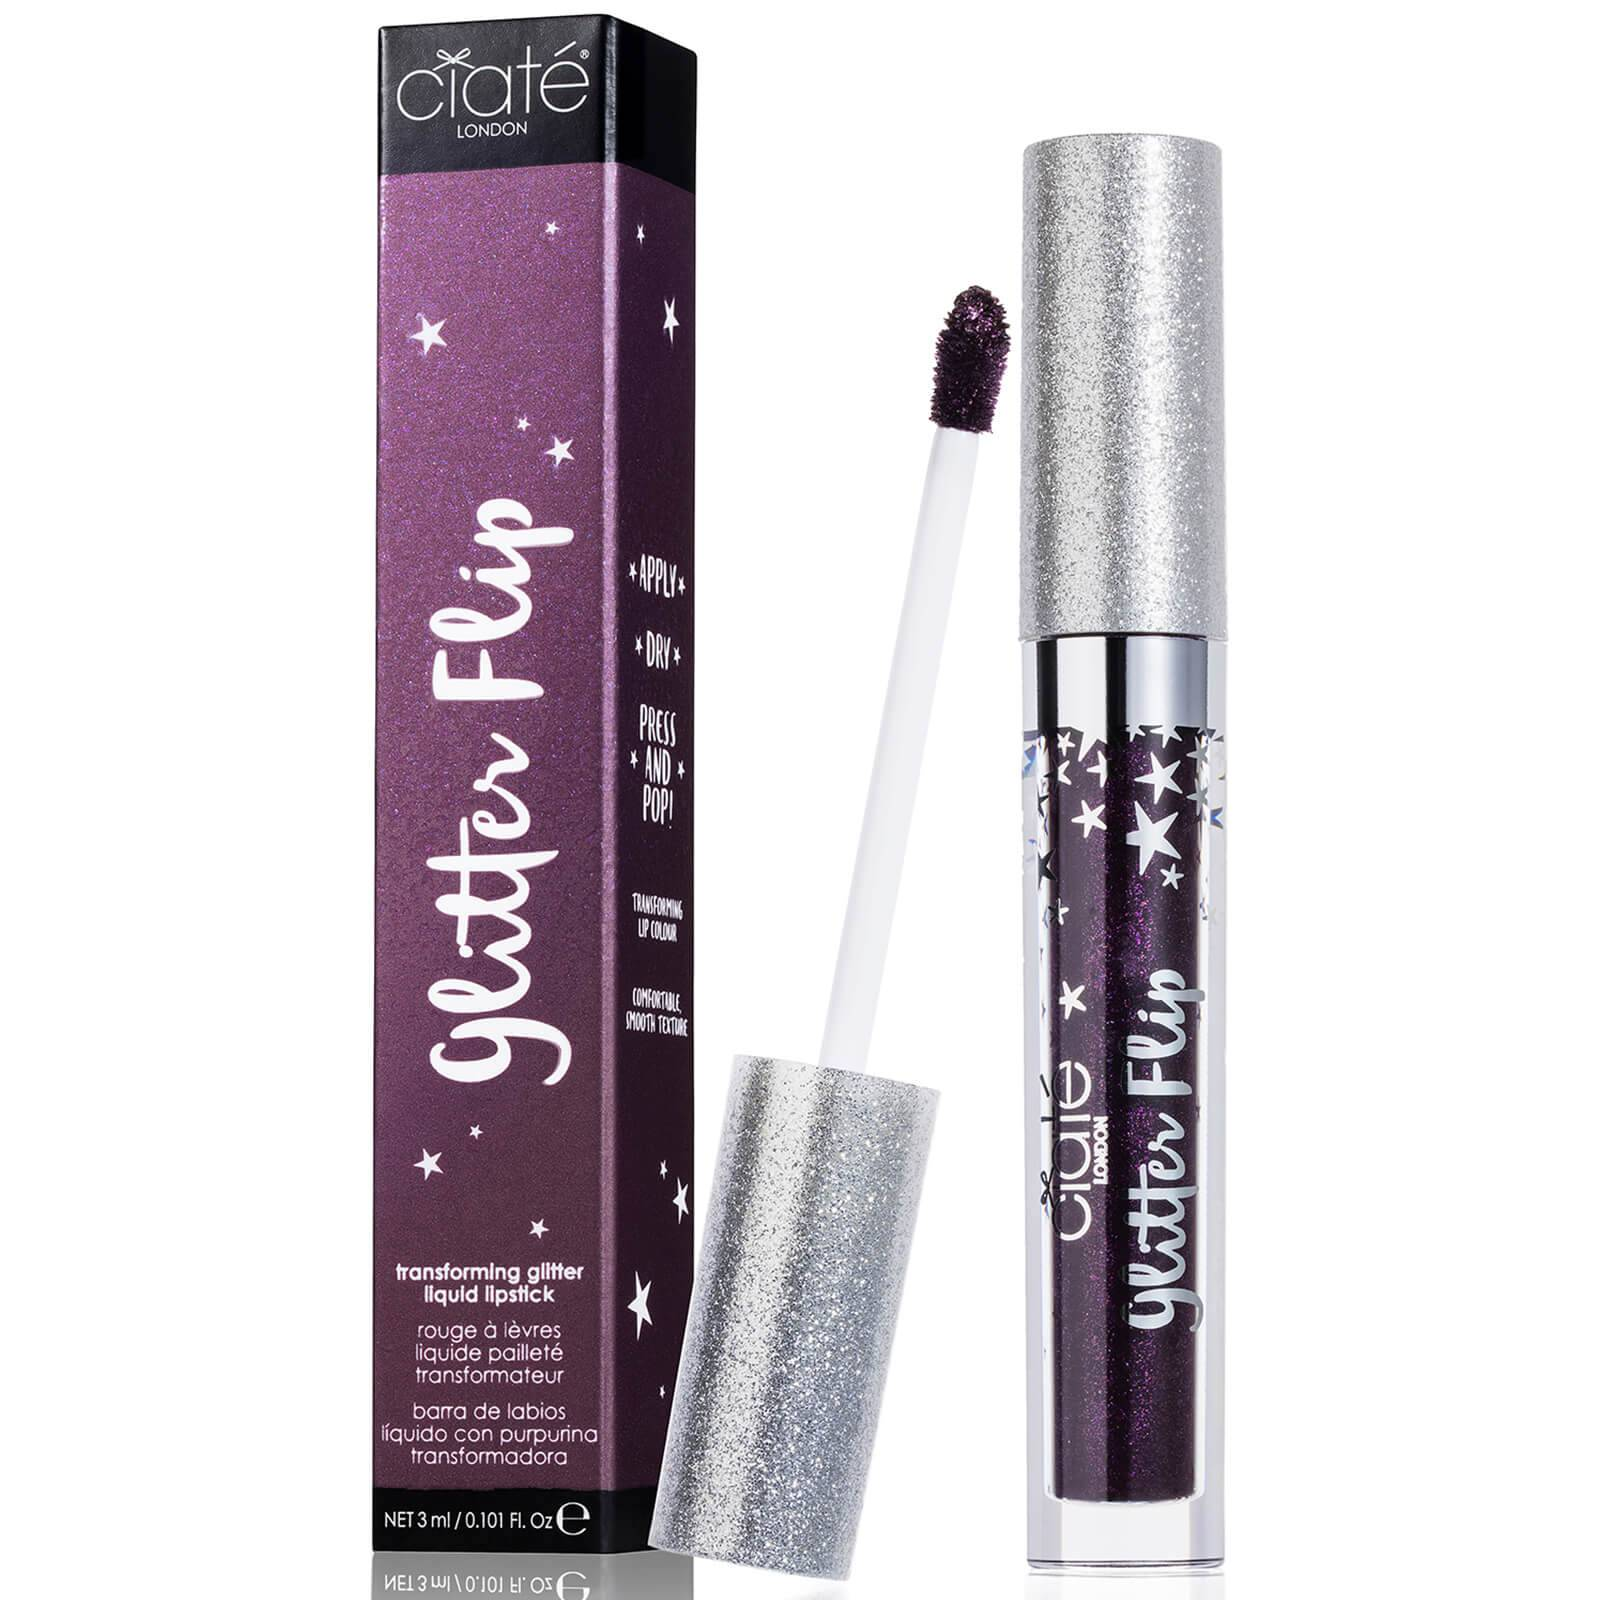 Ciaté London Rouge à lèvres liquide pailleté Glitter Flip Ciaté London - Fortune